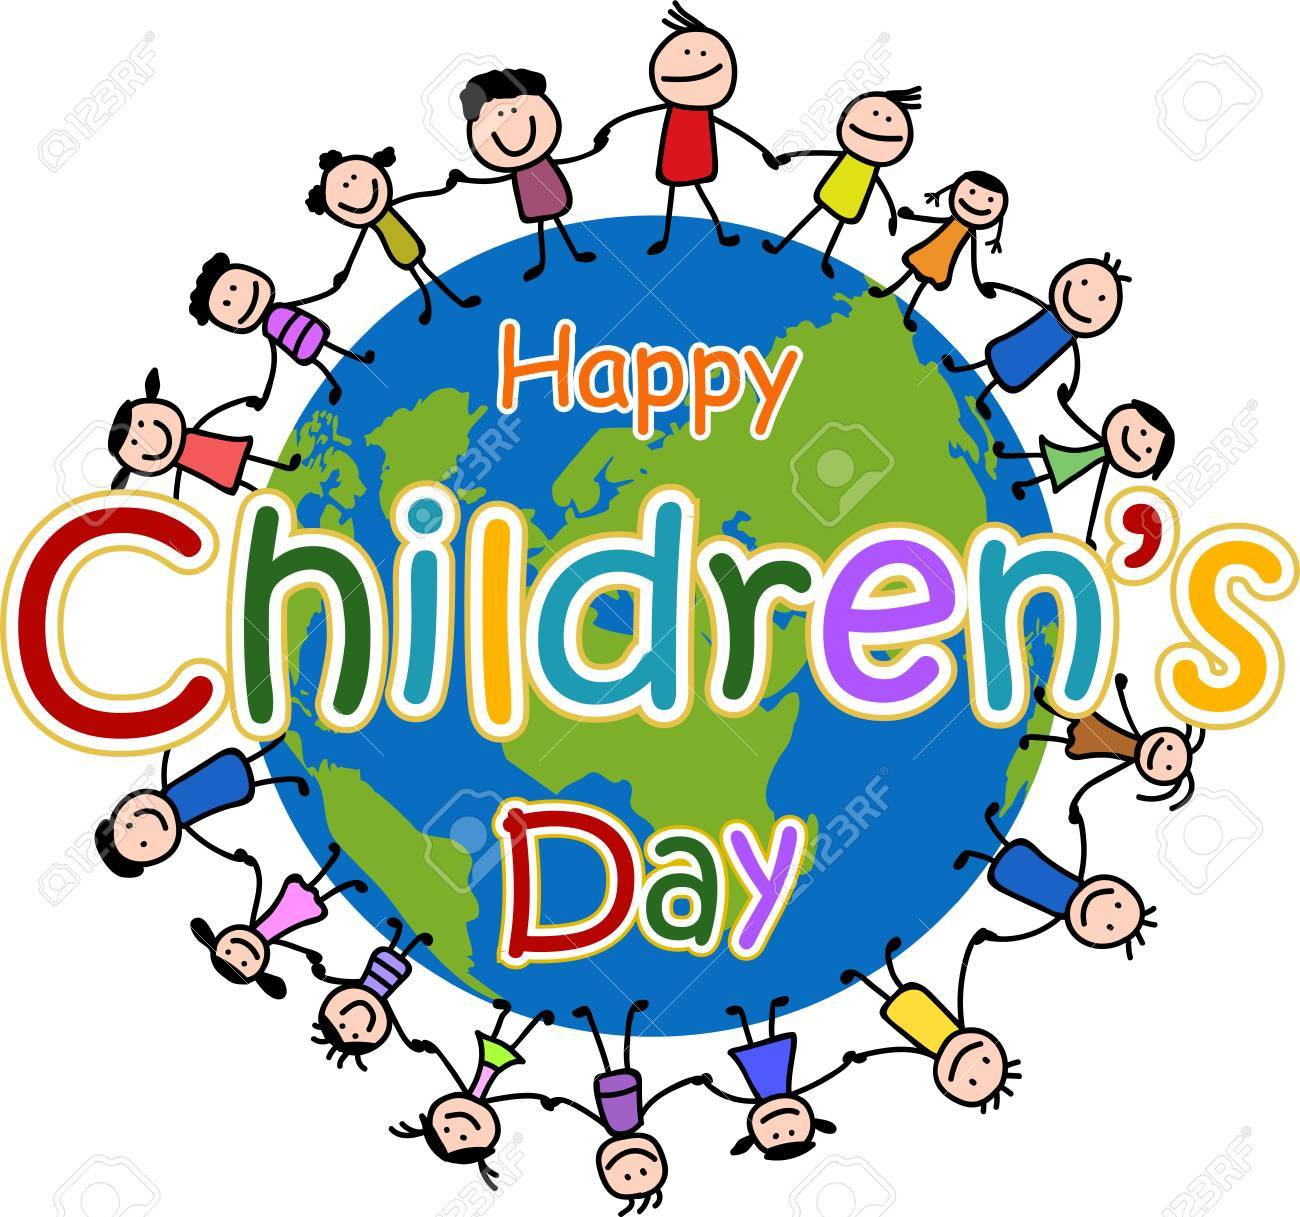 Happy childrens day clipart 6 » Clipart Portal.